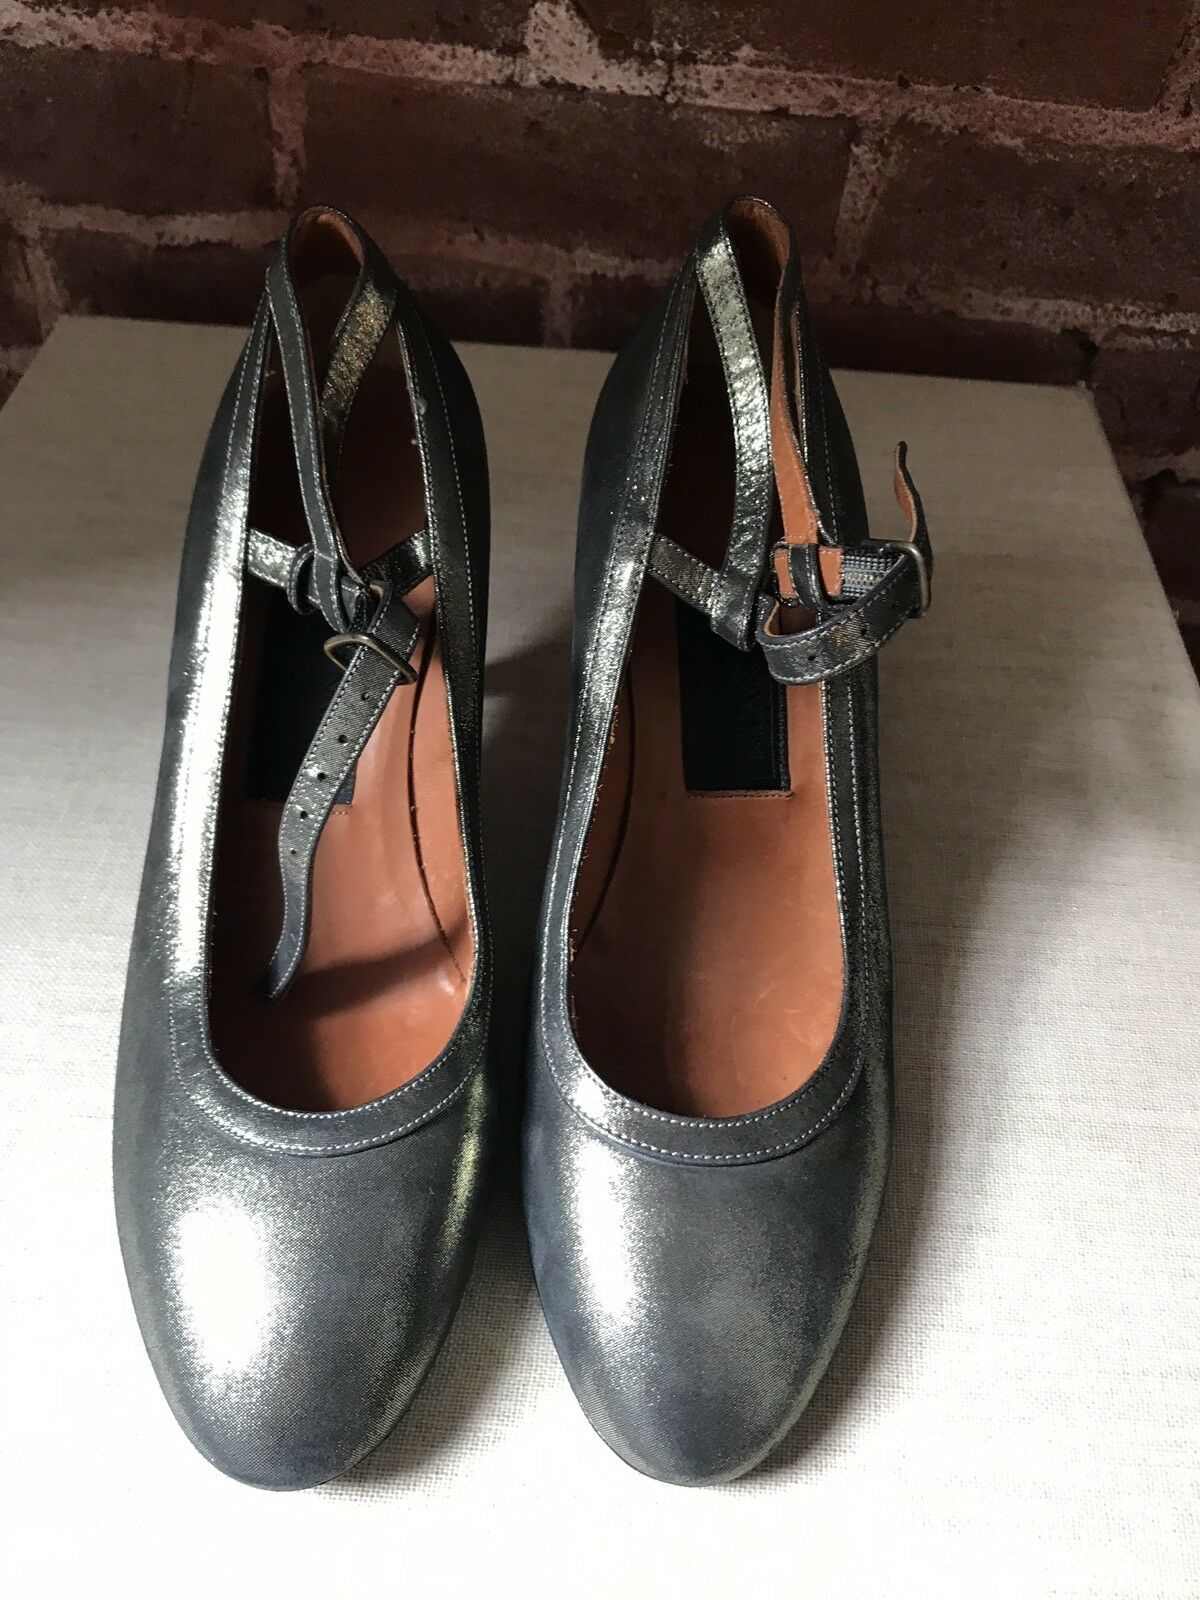 Silver Lanvin Heels 38 And 37.5 New